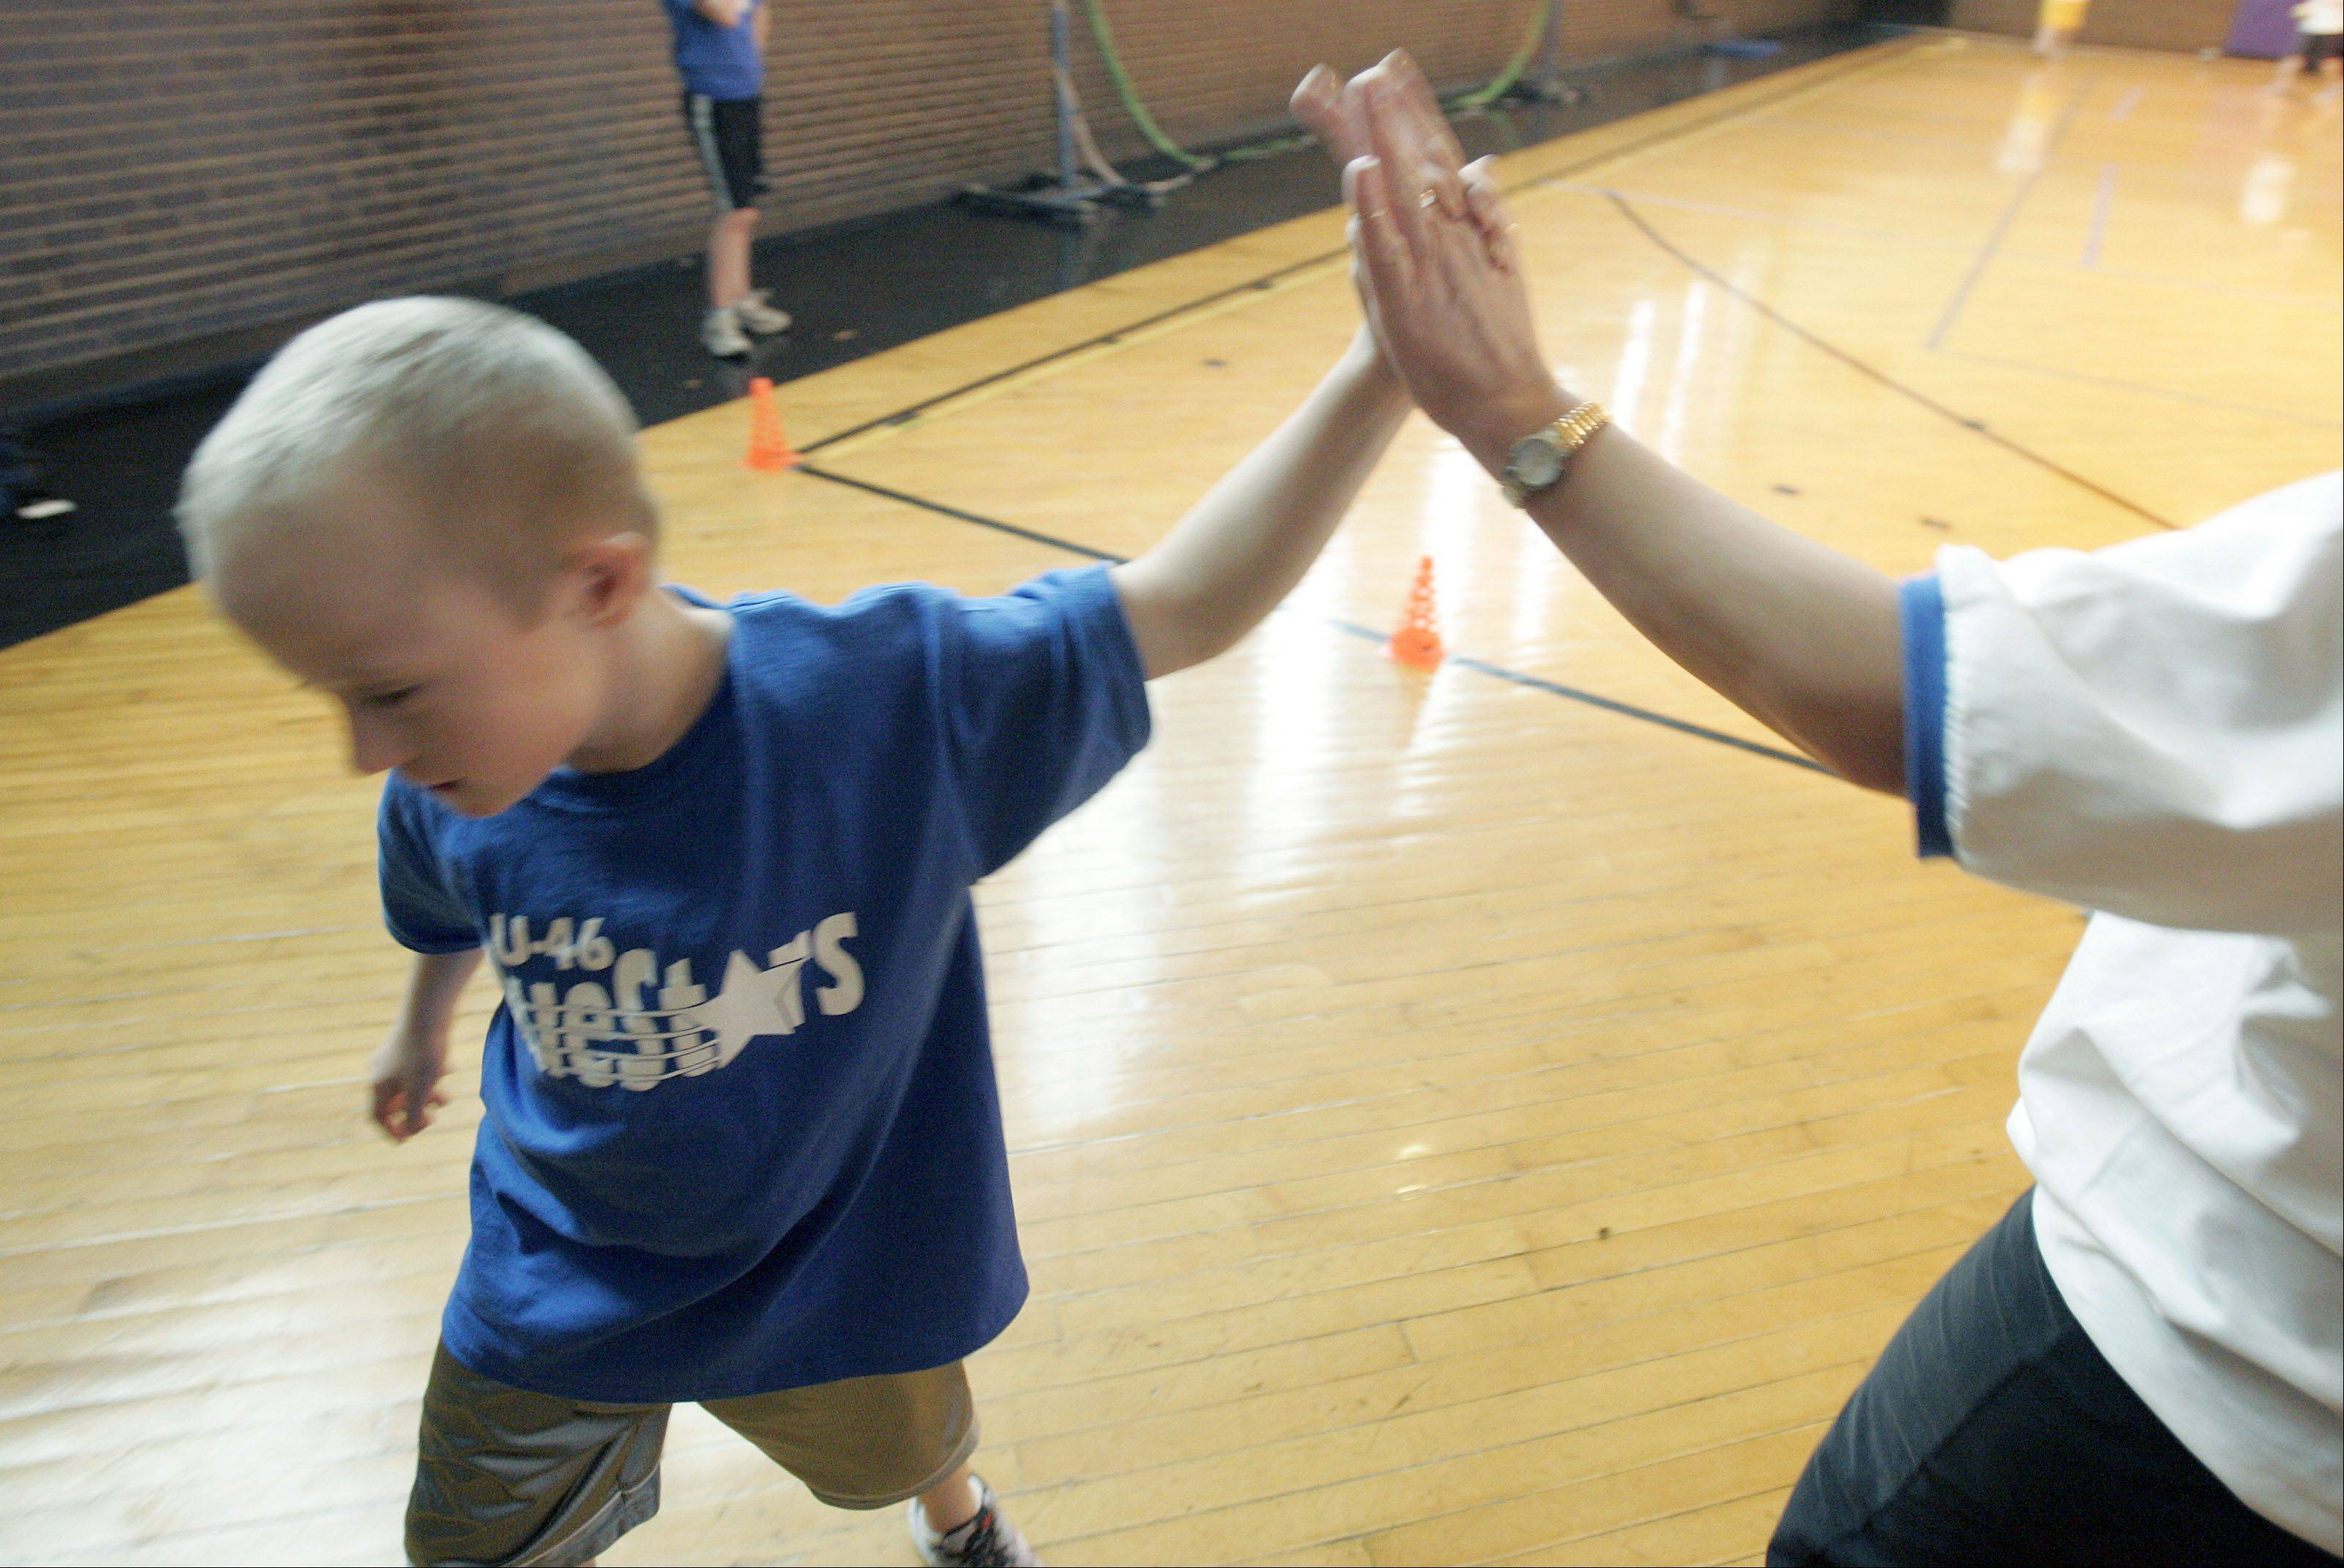 Ian Fergus collects a high-five after his performance in the softball throw during practice.